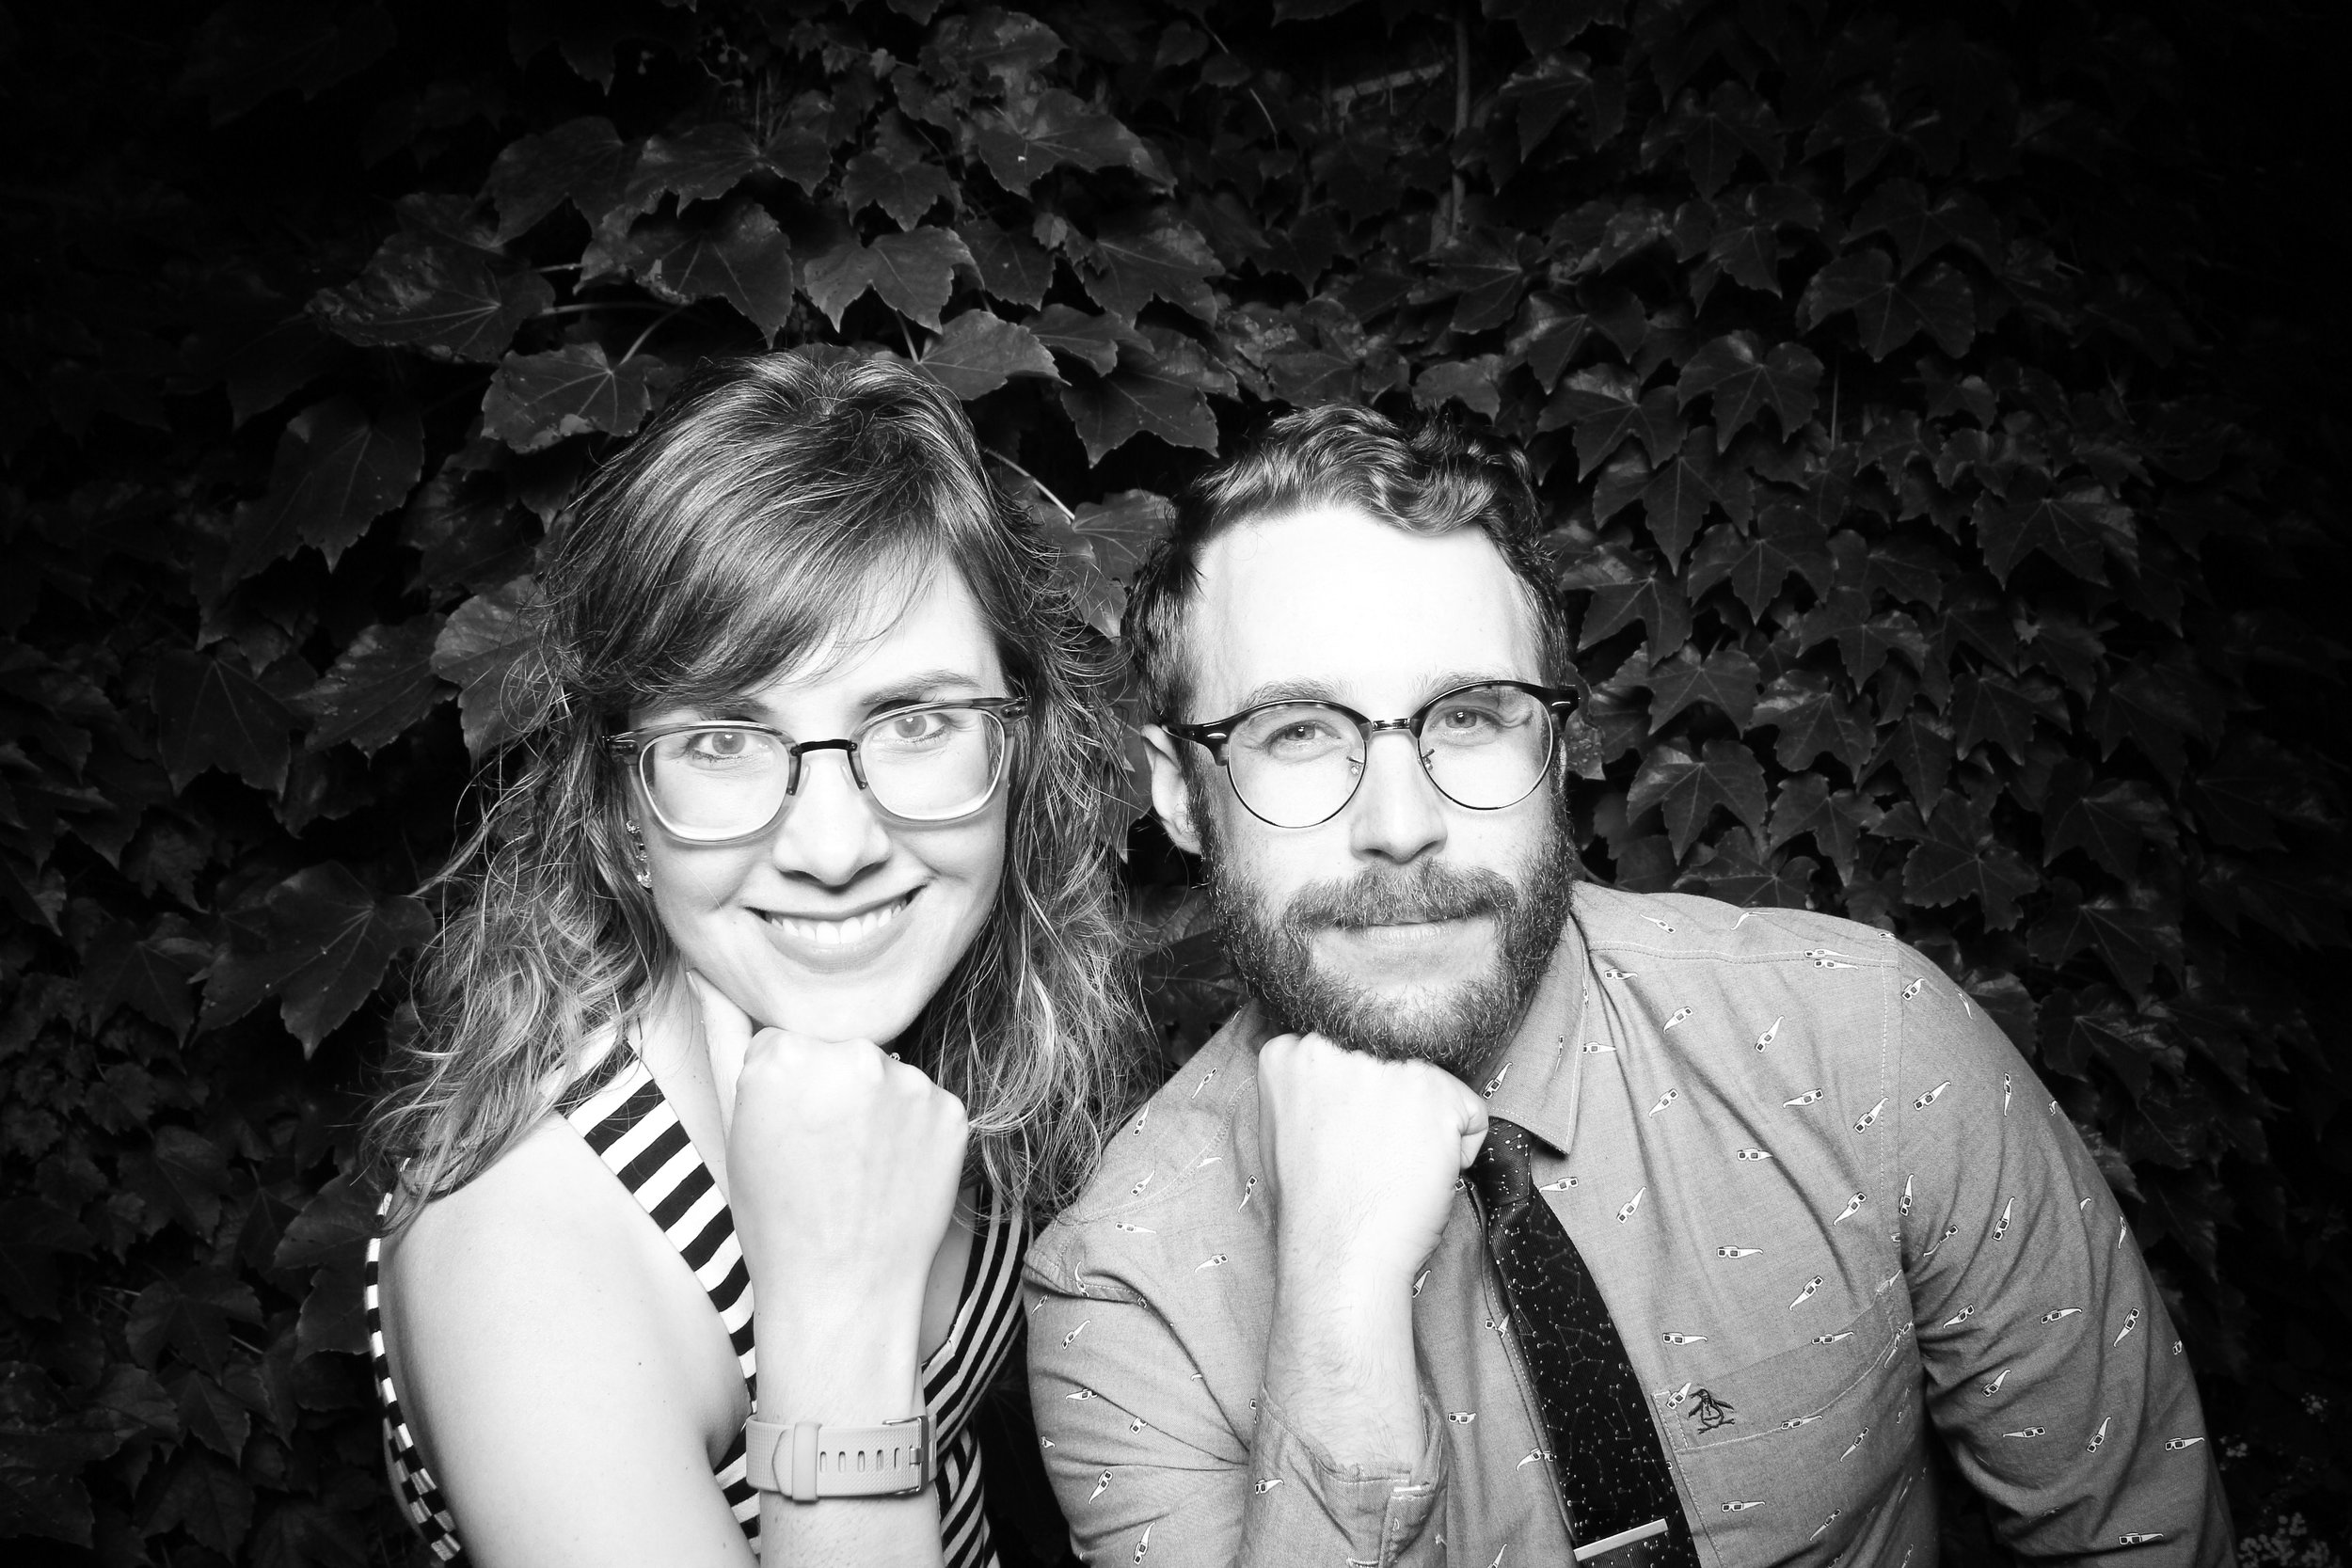 Chicago_Vintage_Wedding_Photobooth_Firehouse_24.jpg